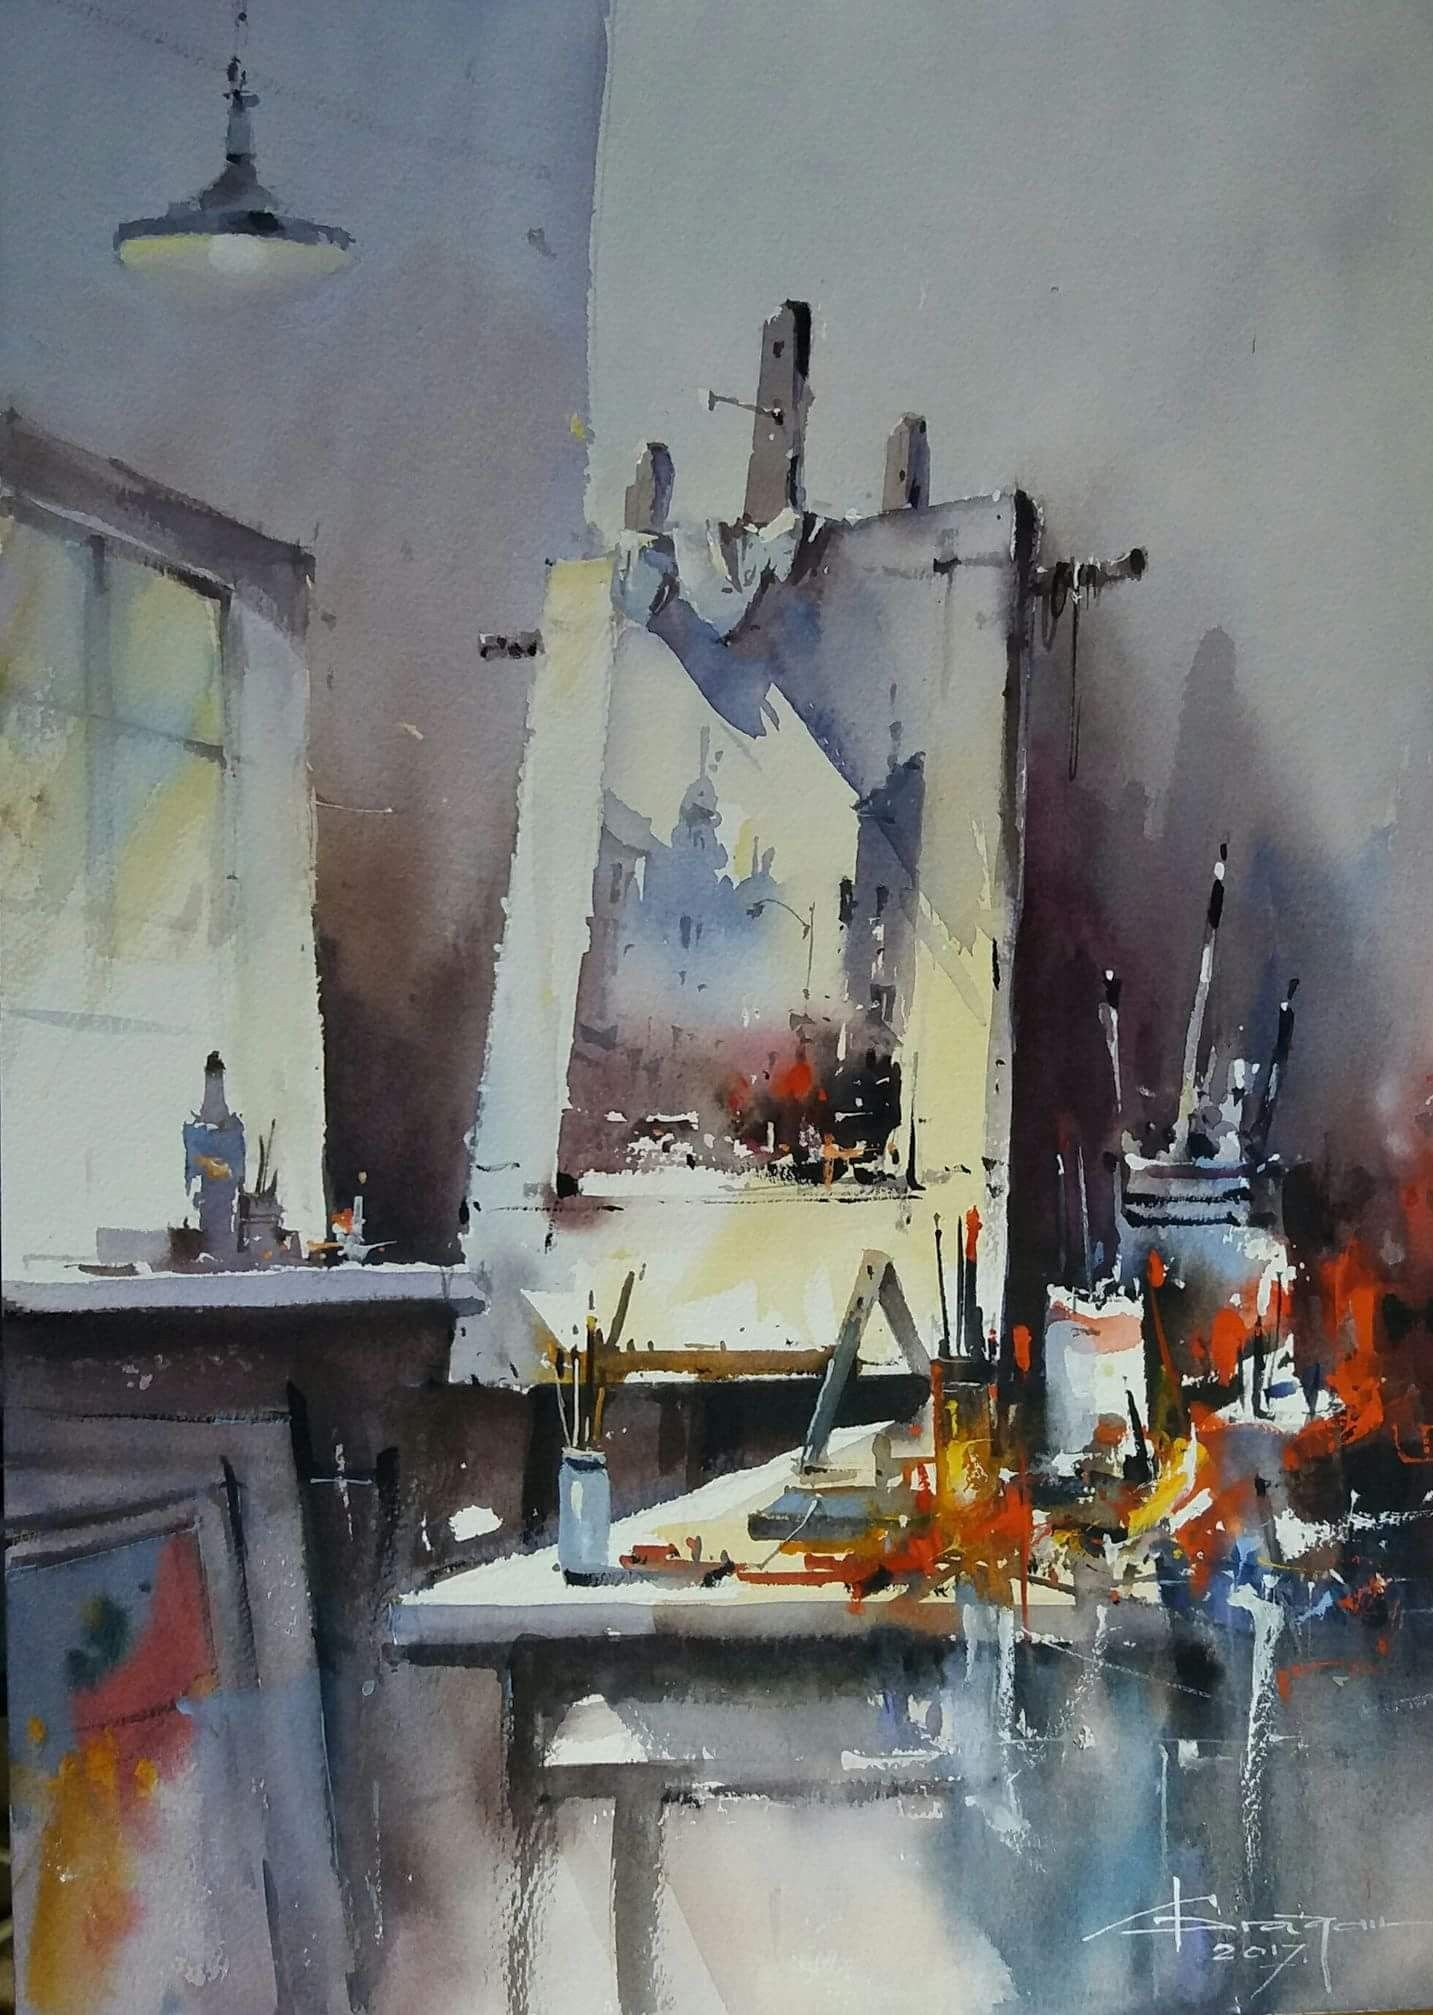 Epingle Par Fabrice Stefanos Sur Watercolor Peinture Aquarelle